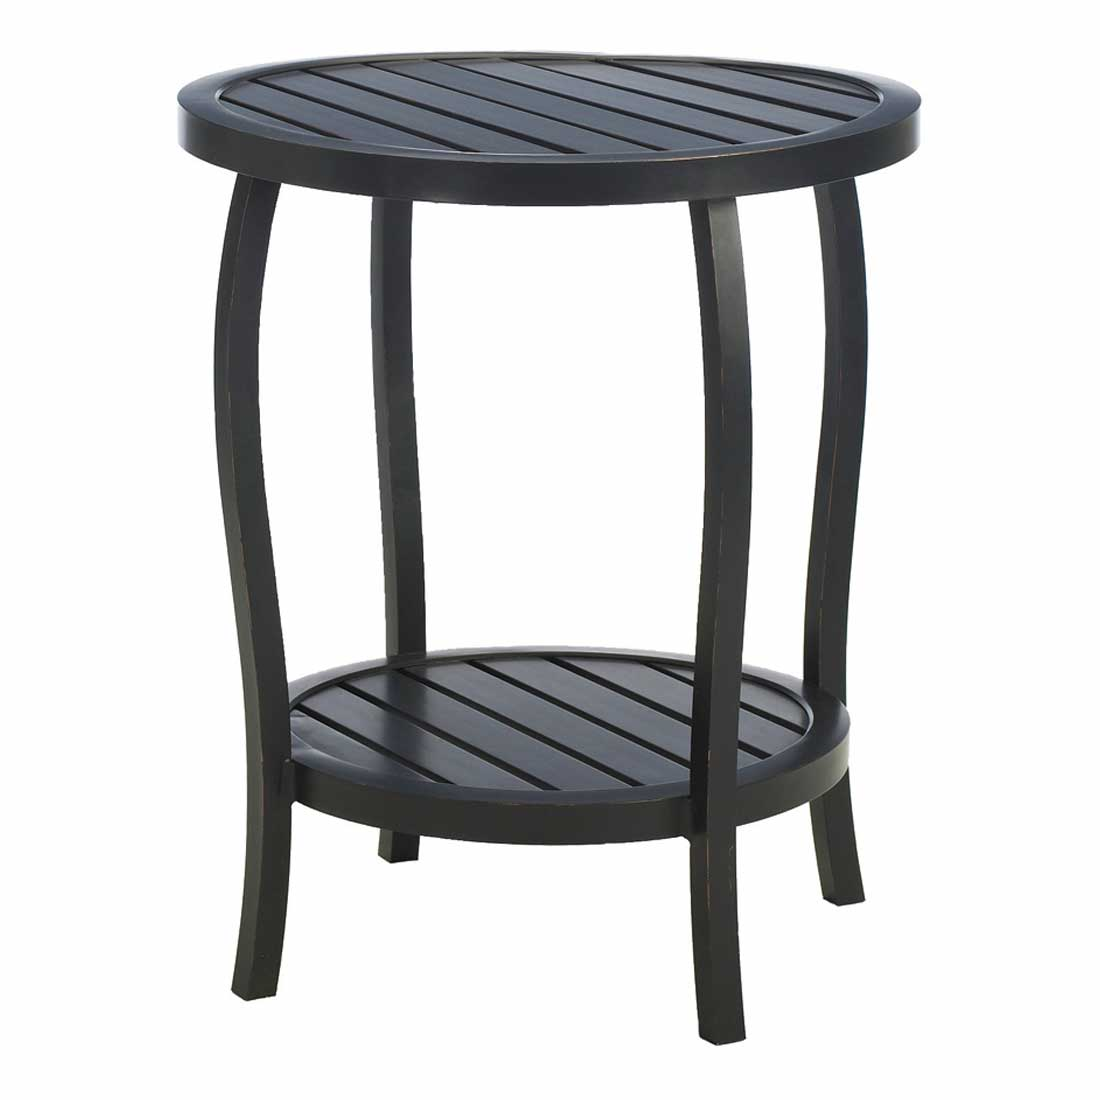 cottage metal outdoor end tables mosaic accent table threshold world market home goods furniture rugs ikea black side decoration piece for windham door cabinet pier one small